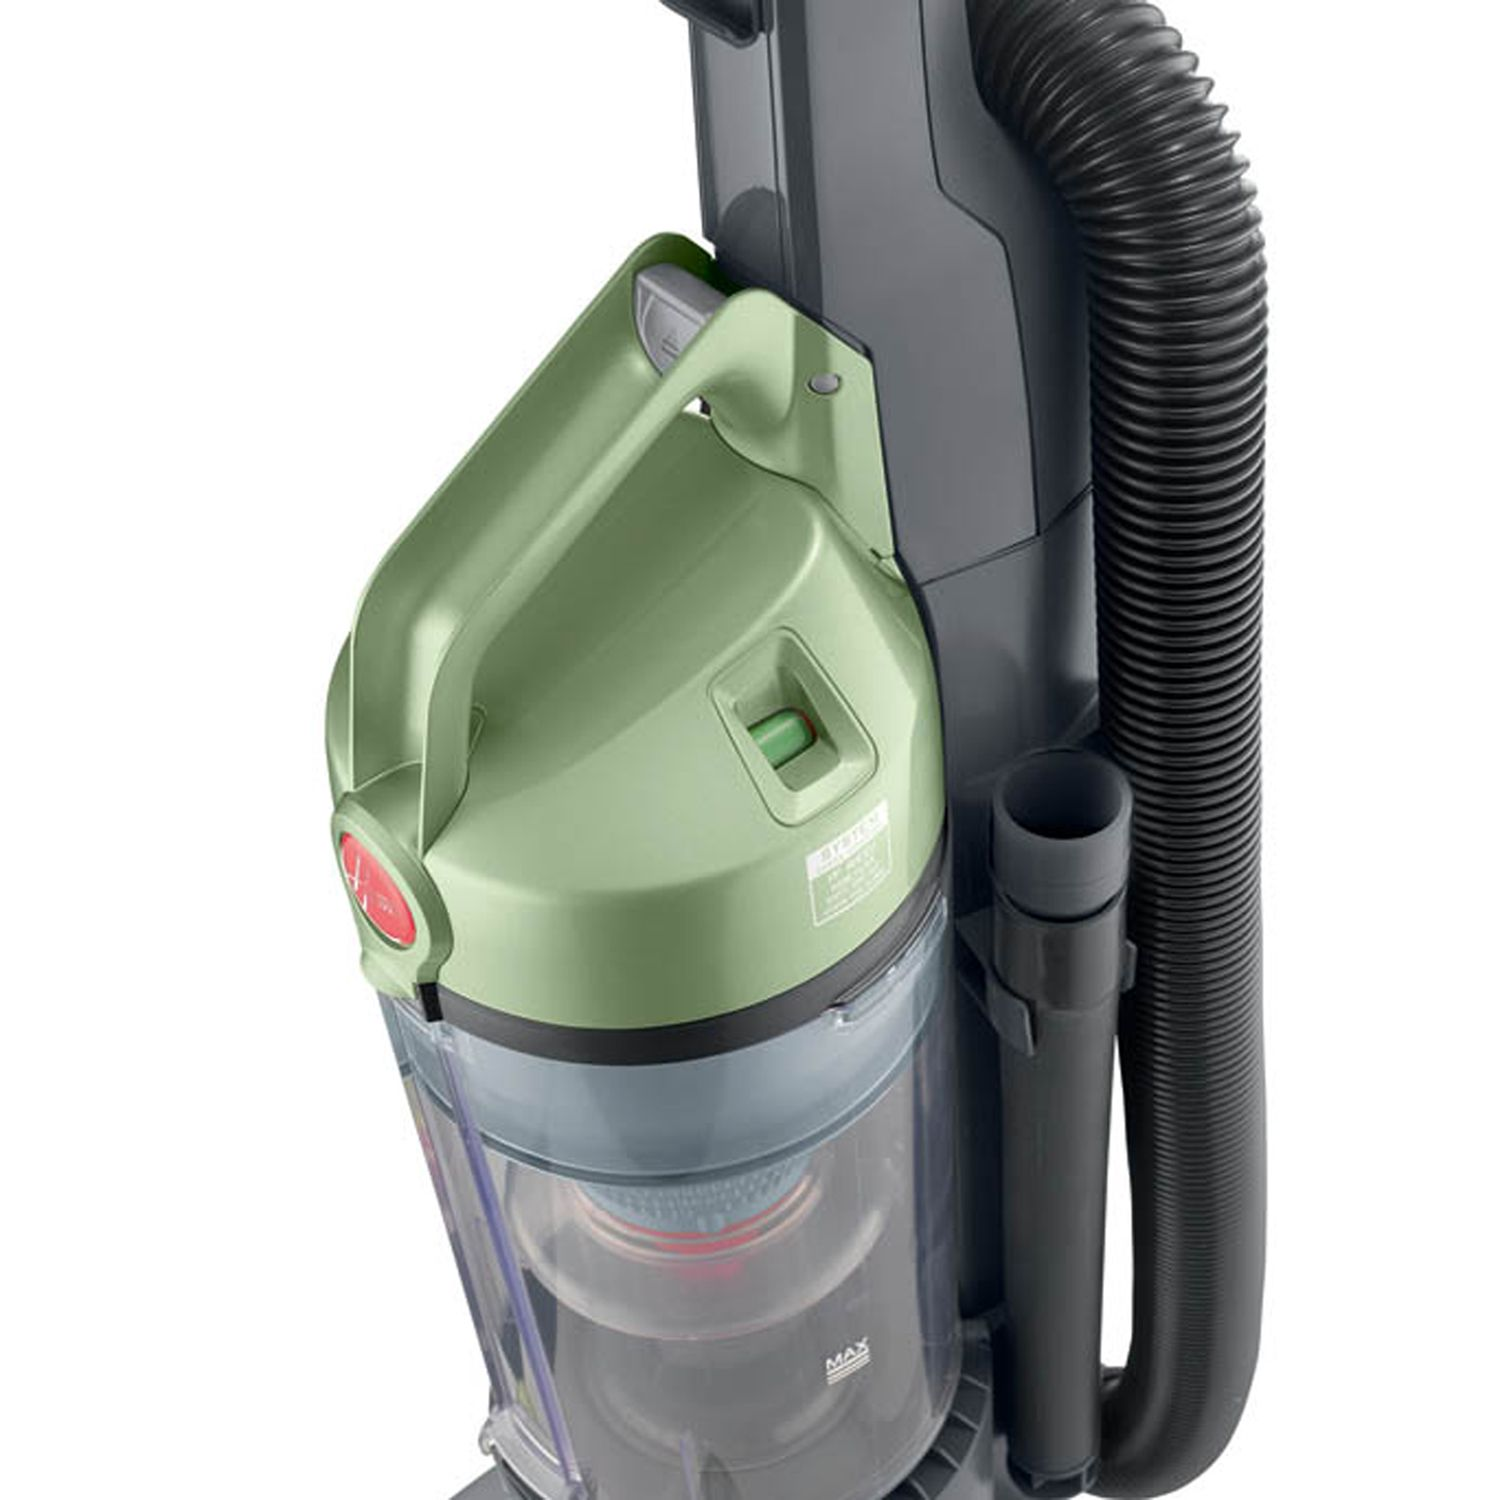 Hoover Upright Vacuum Cleaner - CLOSEOUT